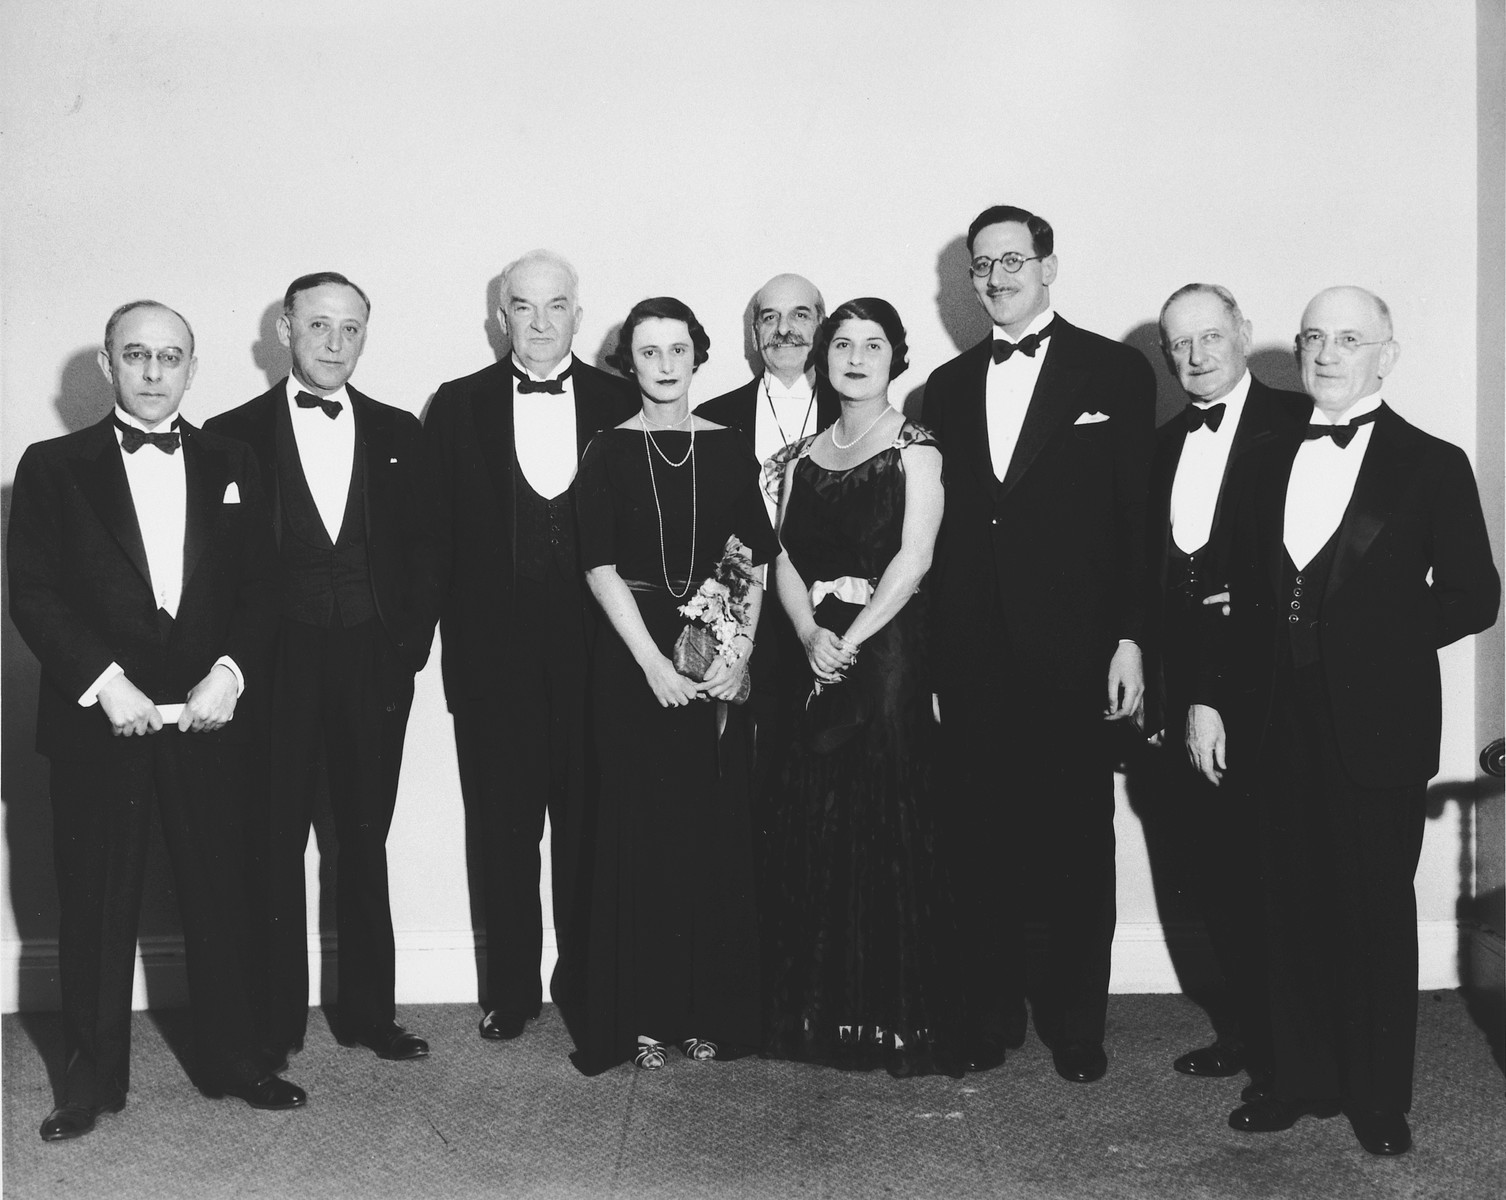 Leaders of the Greater New York campaign of the United Jewish Appeal gather to raise $1,250,000 for the settlement of Jews from Germany and other lands in Palestine.  Left to right: Edwin Goldwasser, co-chairman of the Greater New York campaign, Rabbi Jonah B. Wise, George Gordon Battle, Mrs. Richard Percy Limburg, Felix Warburg, Mrs. Richard Strauss, William Rosenwald, Paul Baerwald and Michael Schaap.